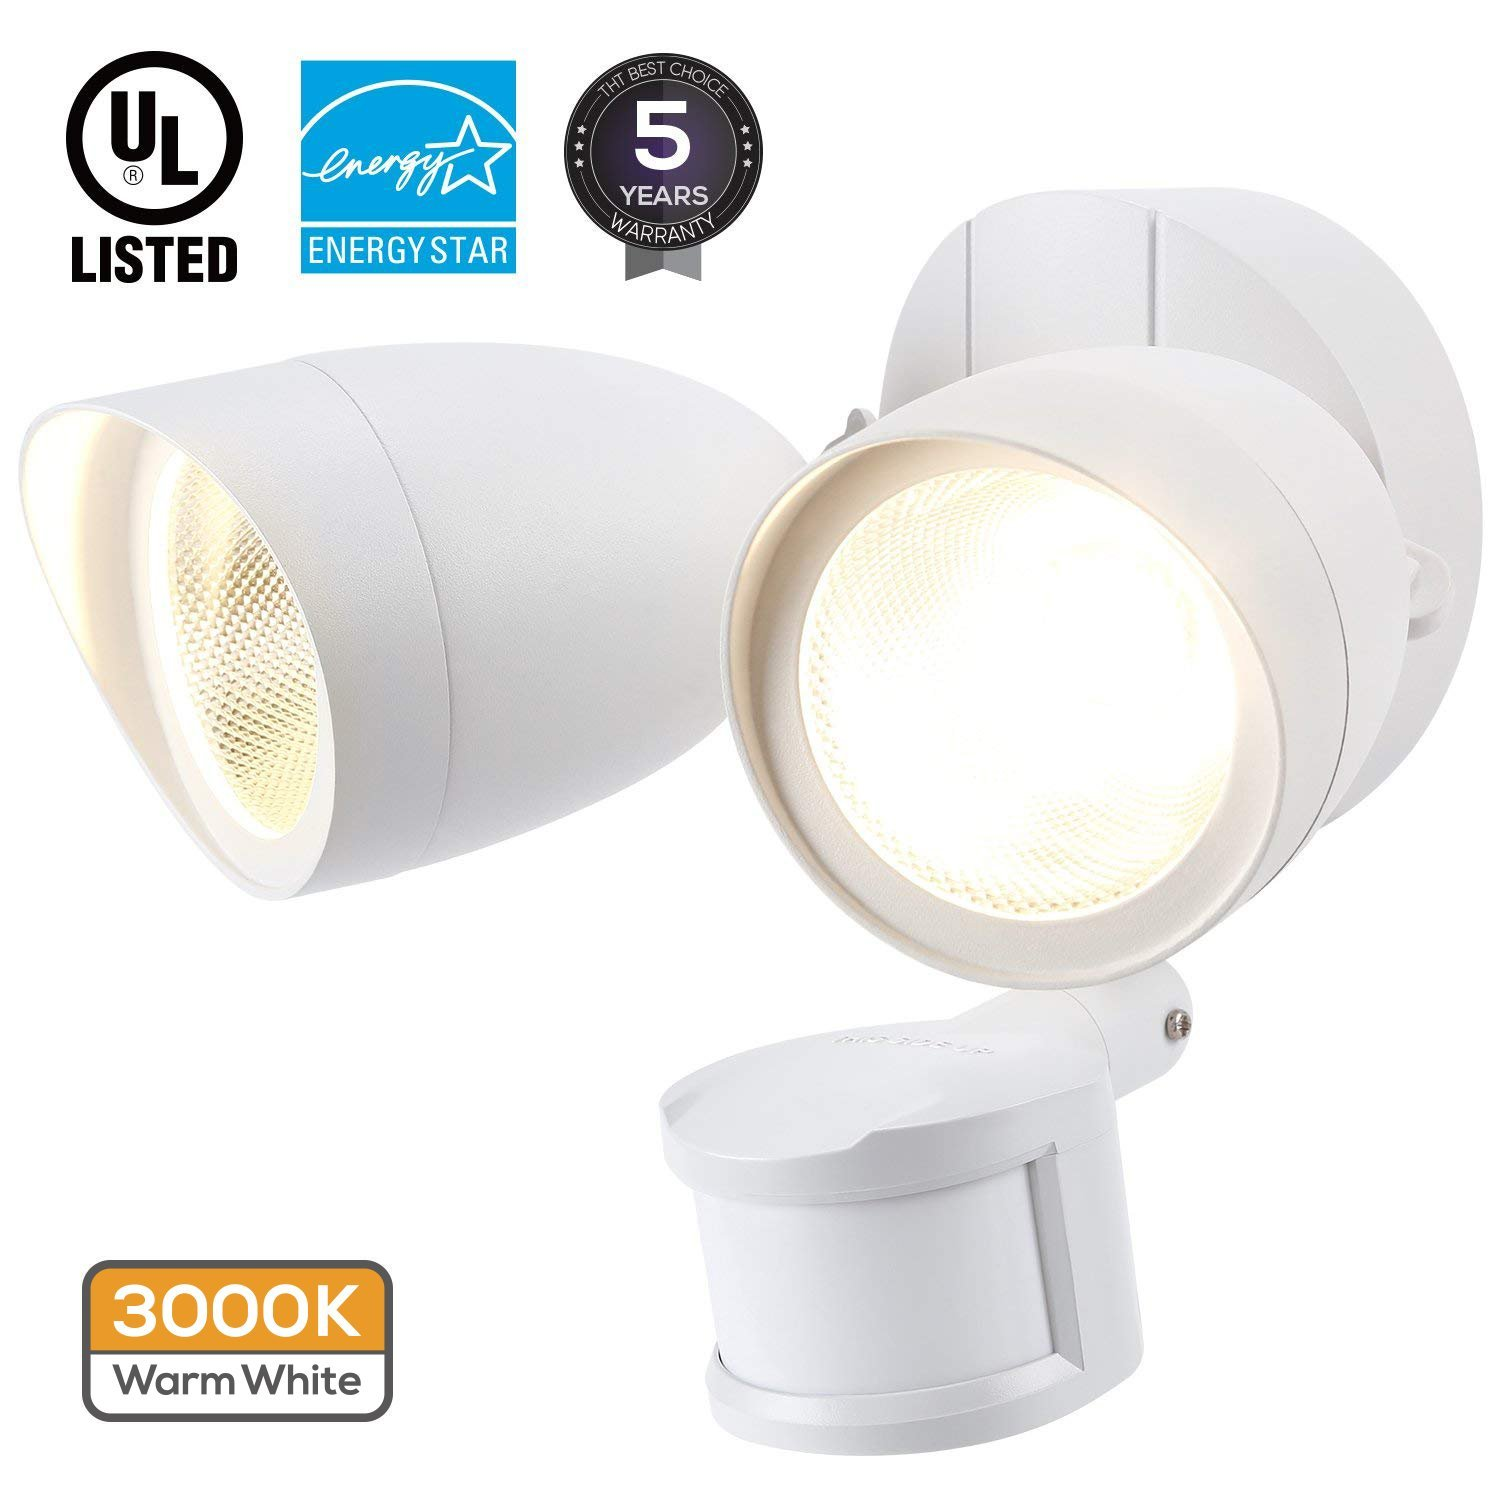 LEONLITE Dual-Head Motion-Activated LED Outdoor Security Light, White Finish 20W (120W Equiv.), 1400lm, UL & Energy Star Certified Exterior Flood Light, 3000K Warm White, 5 Years Warranty